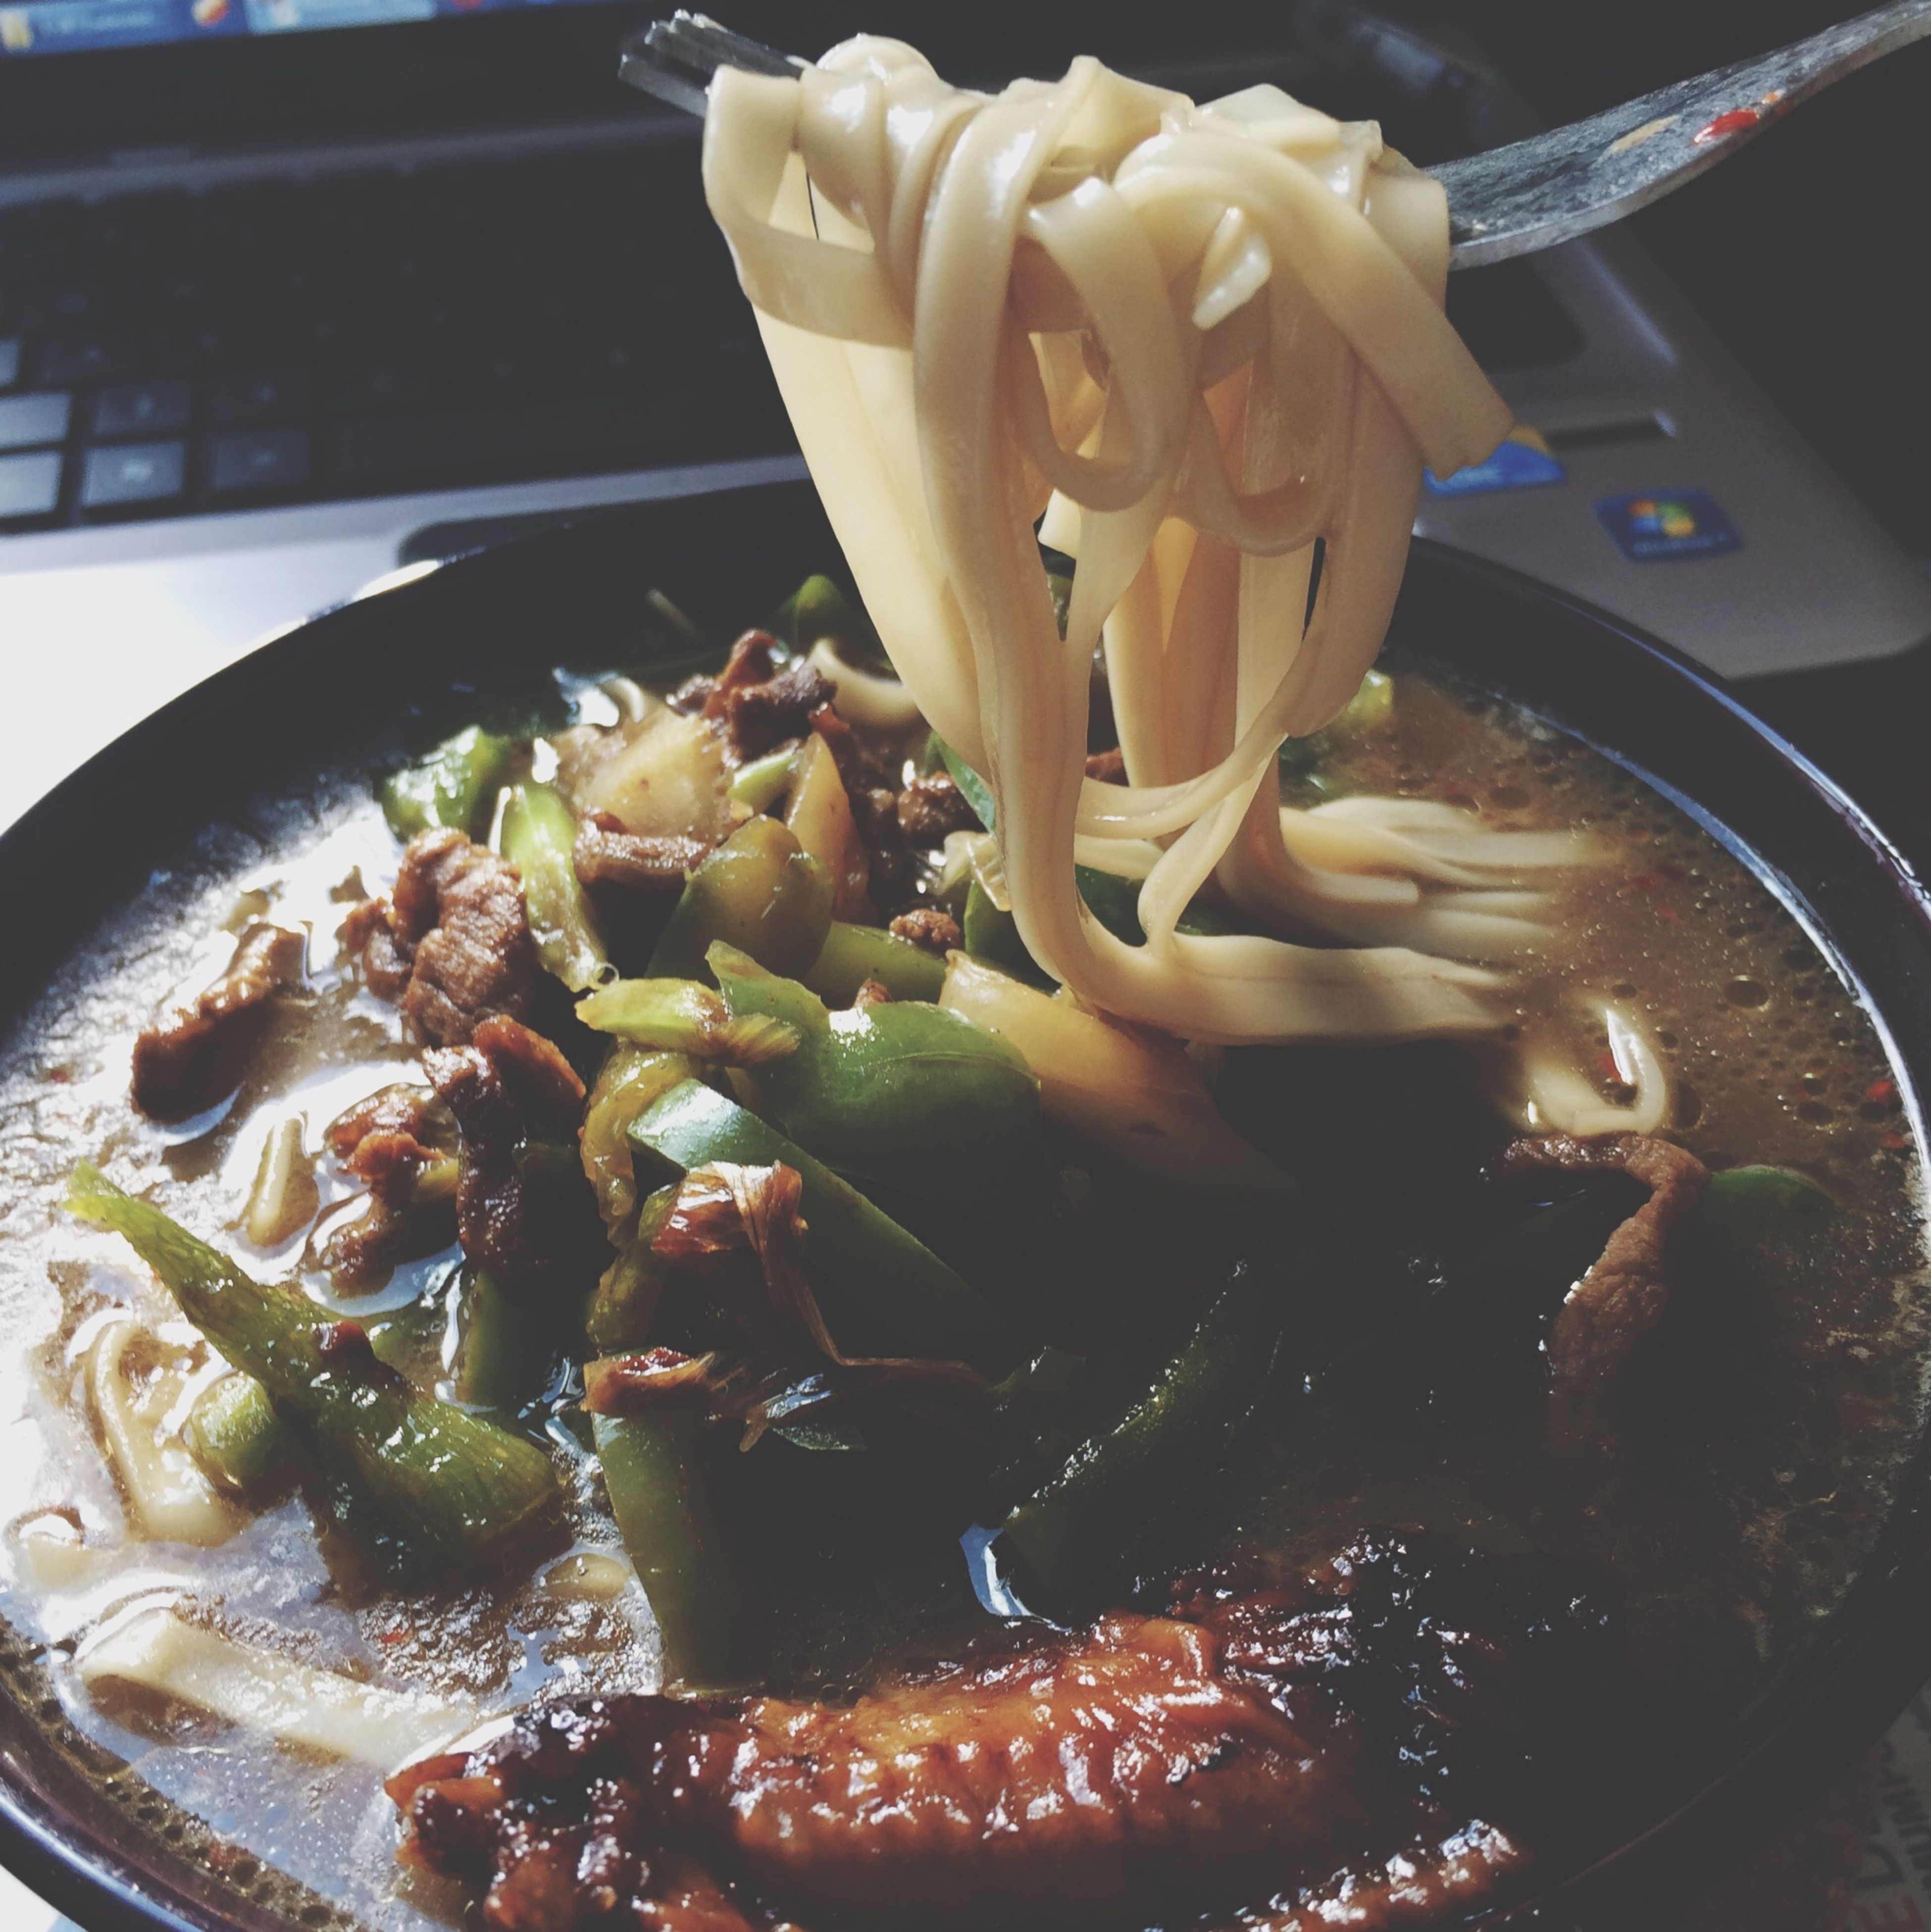 Chinese noodles with a chinken wing and green peppers